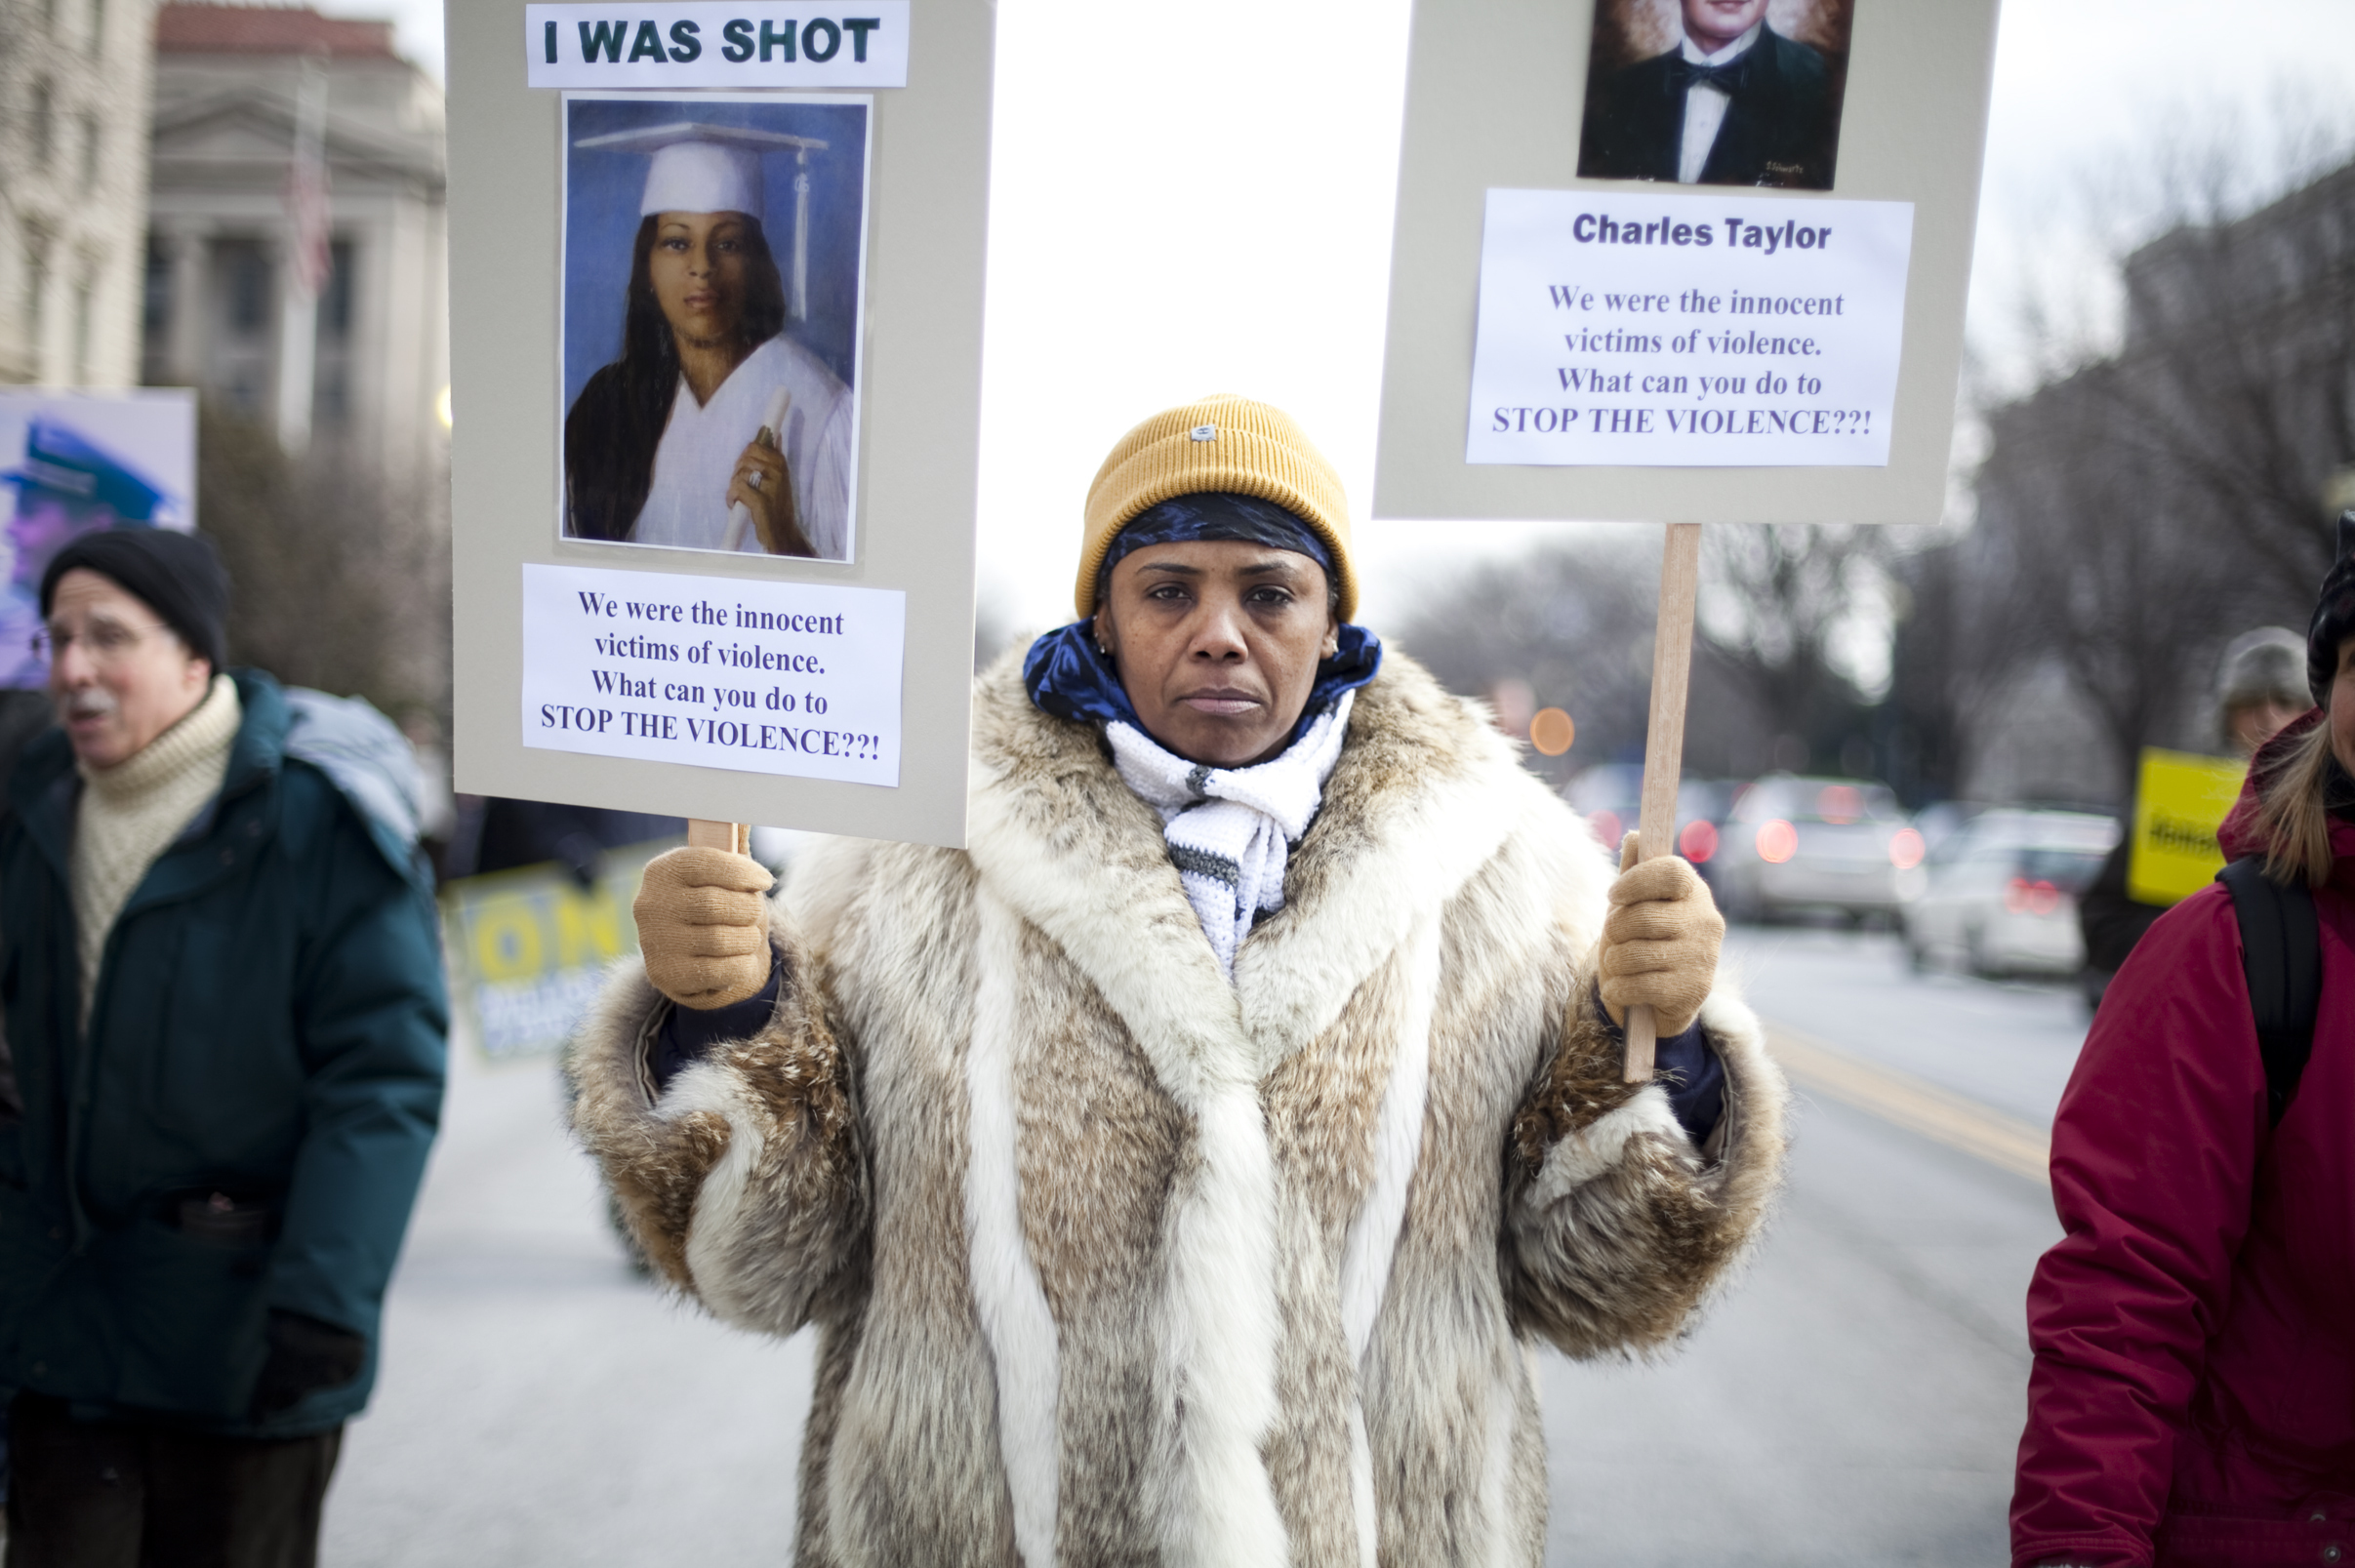 Movita Johnson-Harrell from Philadelphia marched down Constitution Ave. as part of the rally. Movita lost her 18-year-old son, Charles Johnson, to gun violence in 2011.